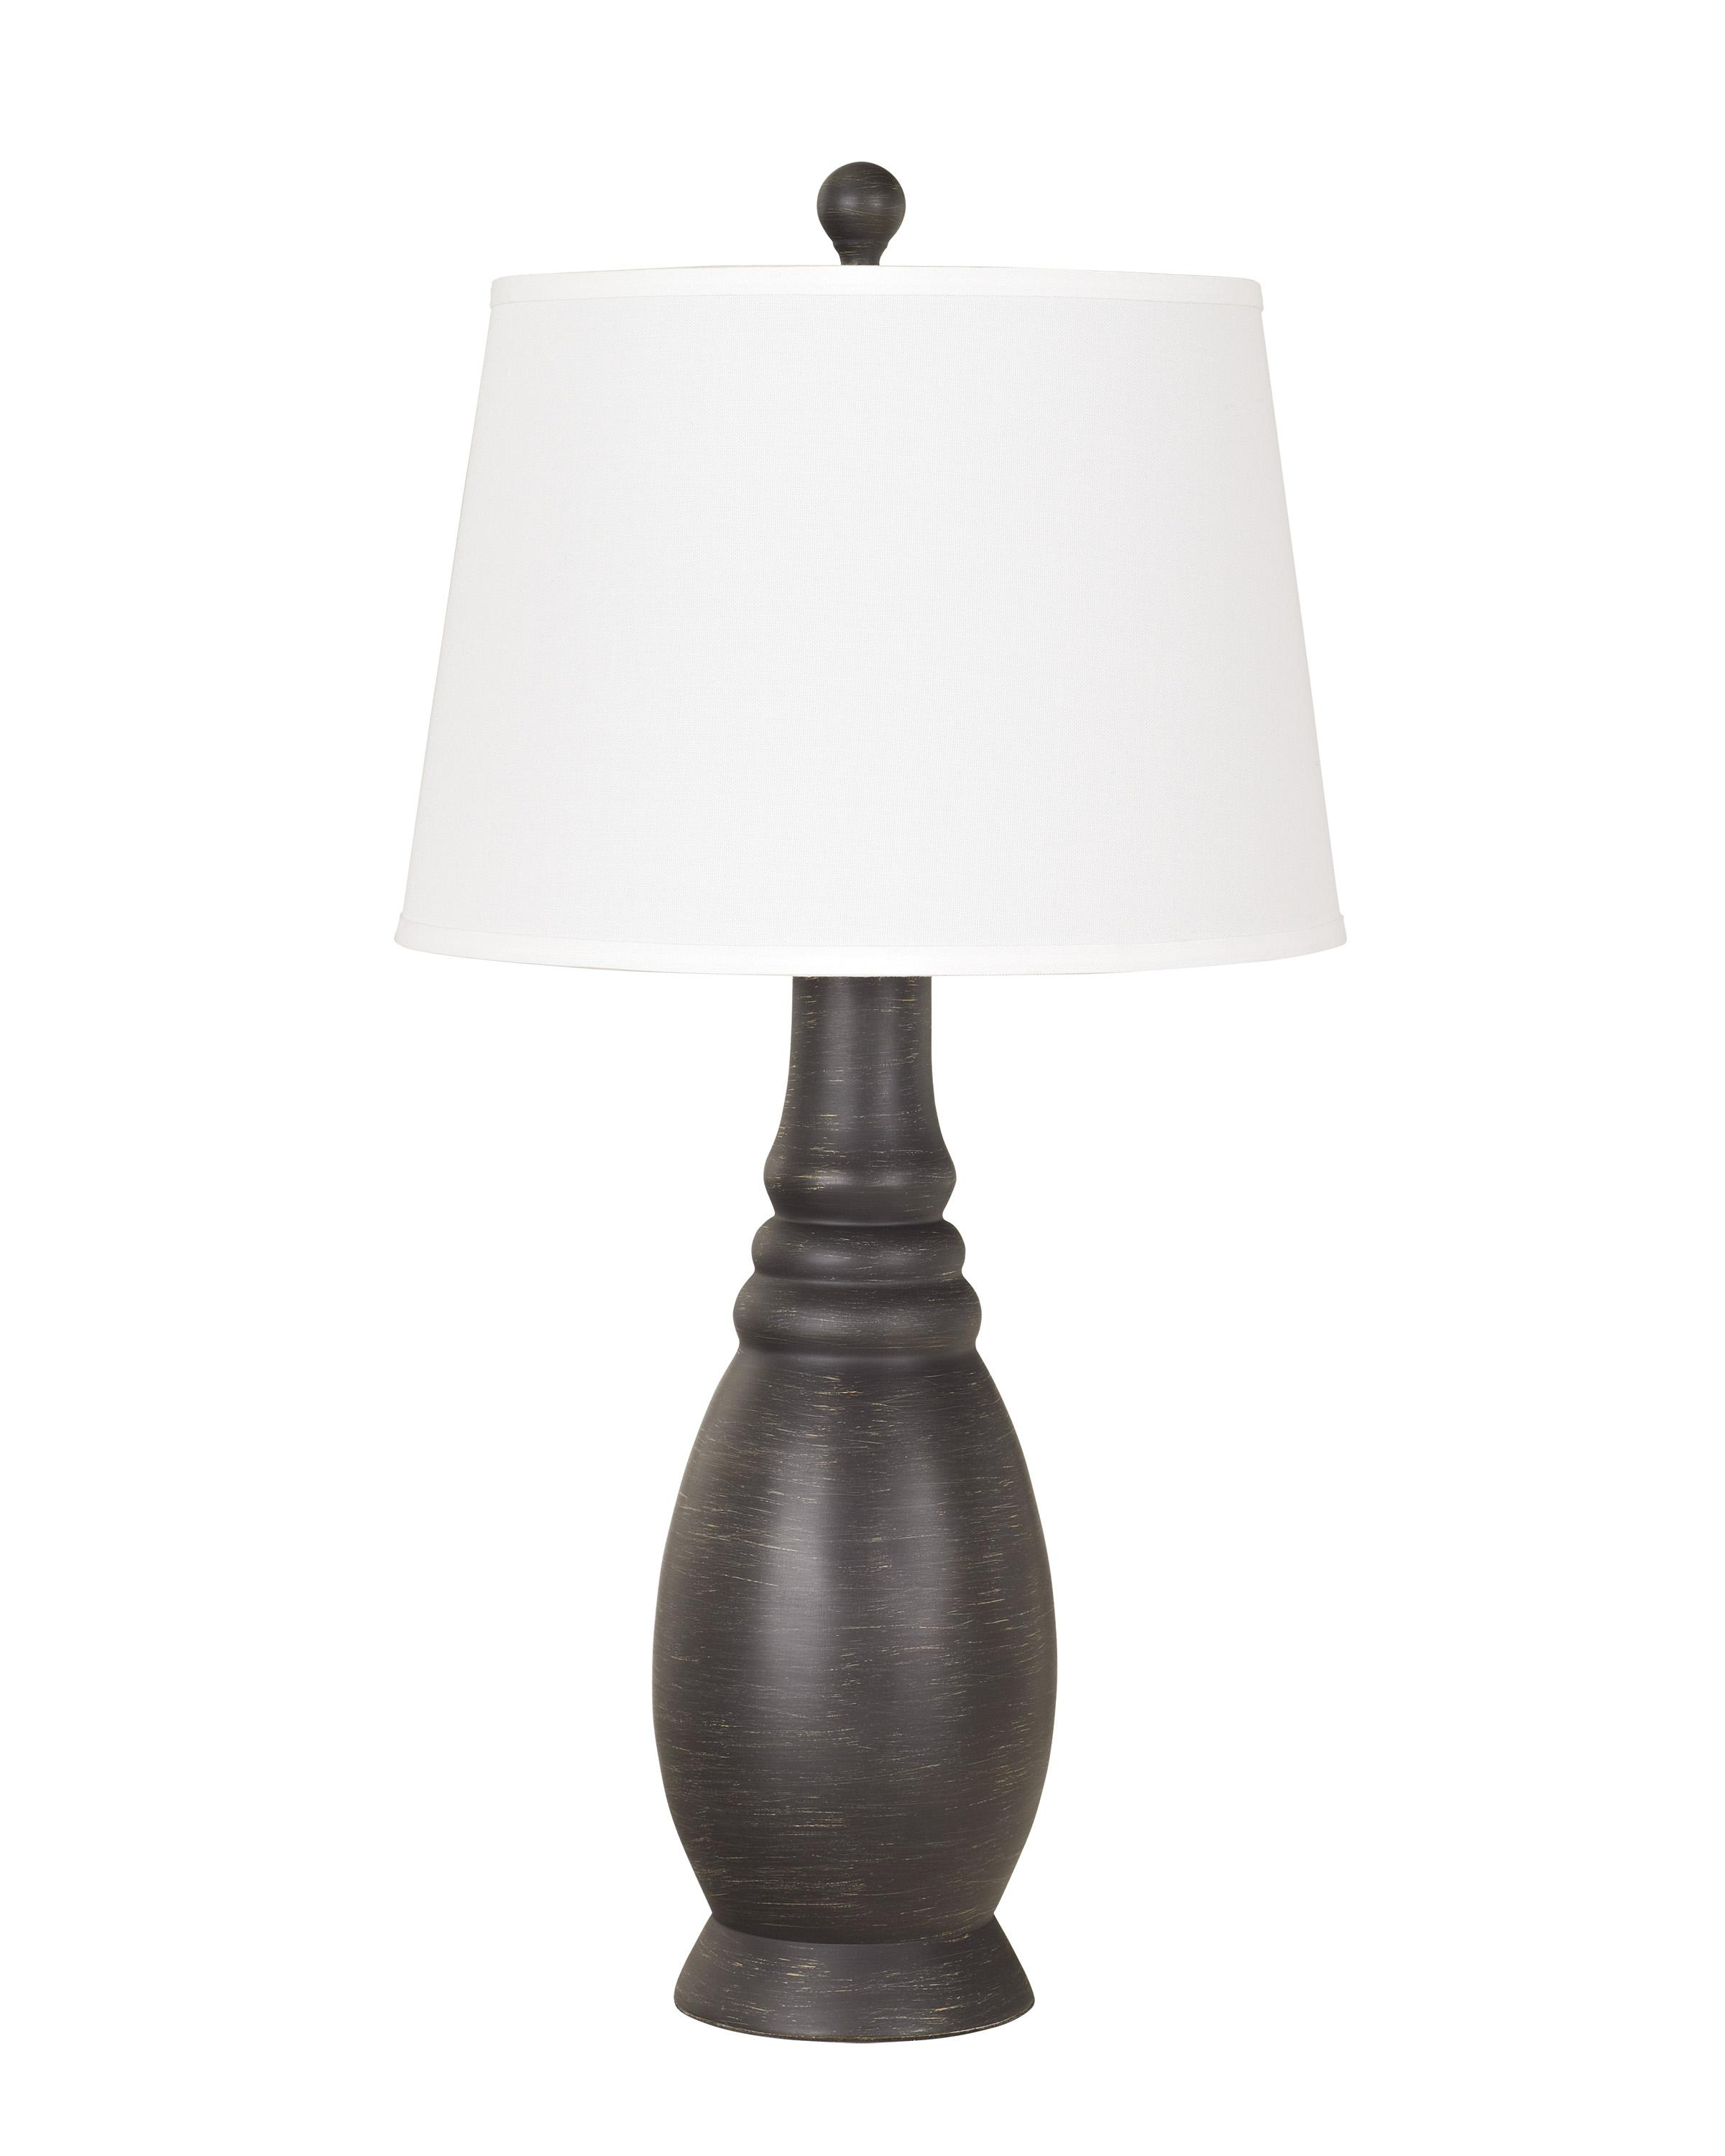 Lamps - Vintage Style Set of 2 Table Lamps by Signature Design by Ashley at HomeWorld Furniture